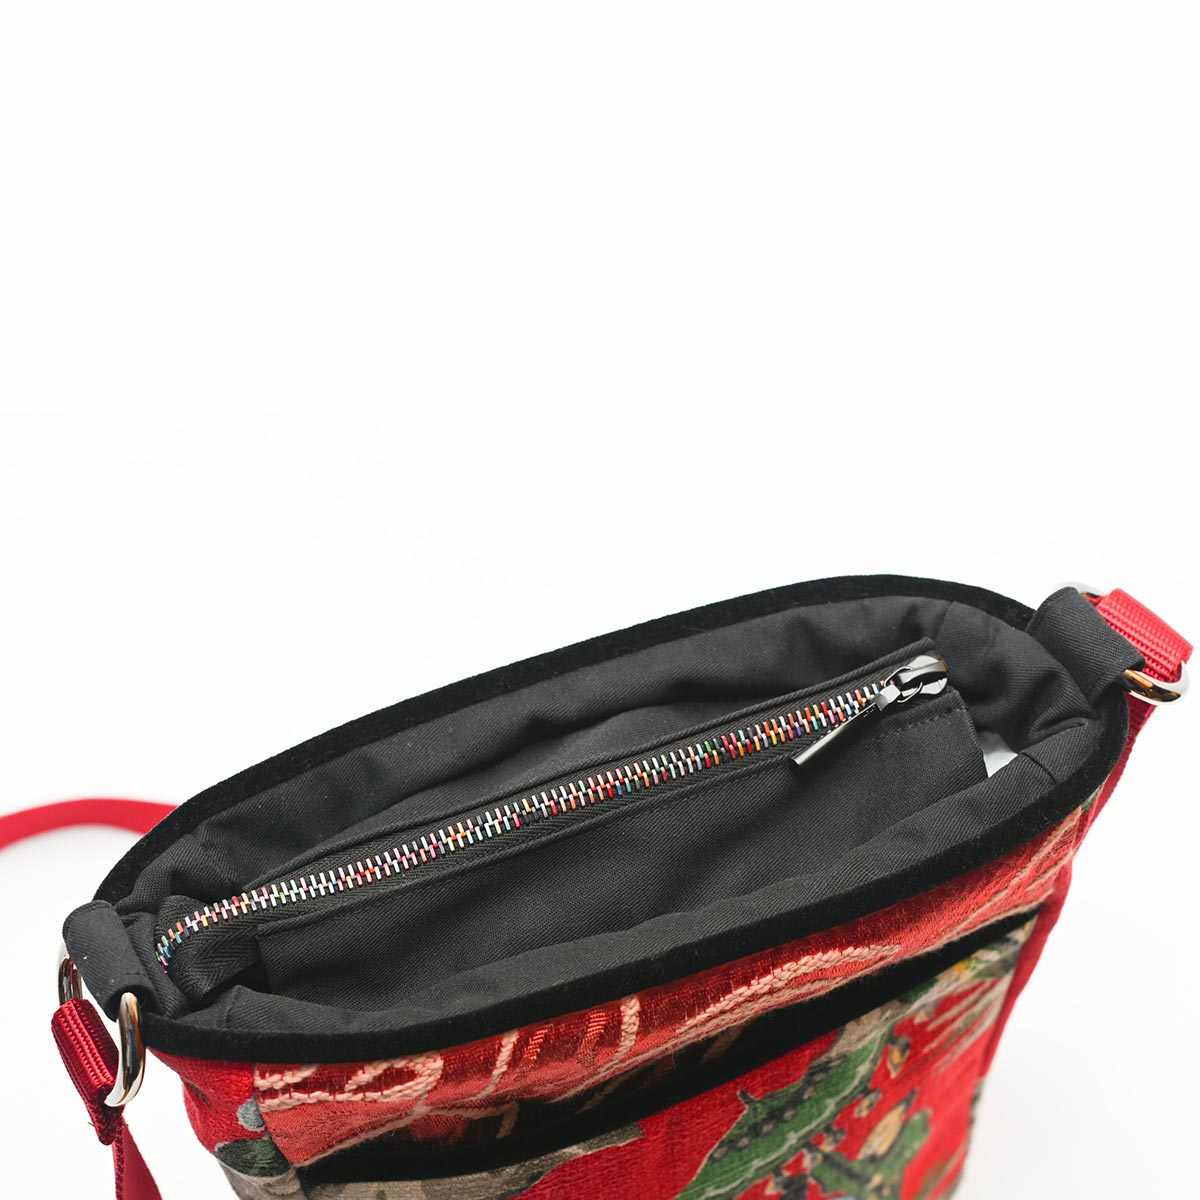 crossbody bag asian motif on cherry red DSC 6531